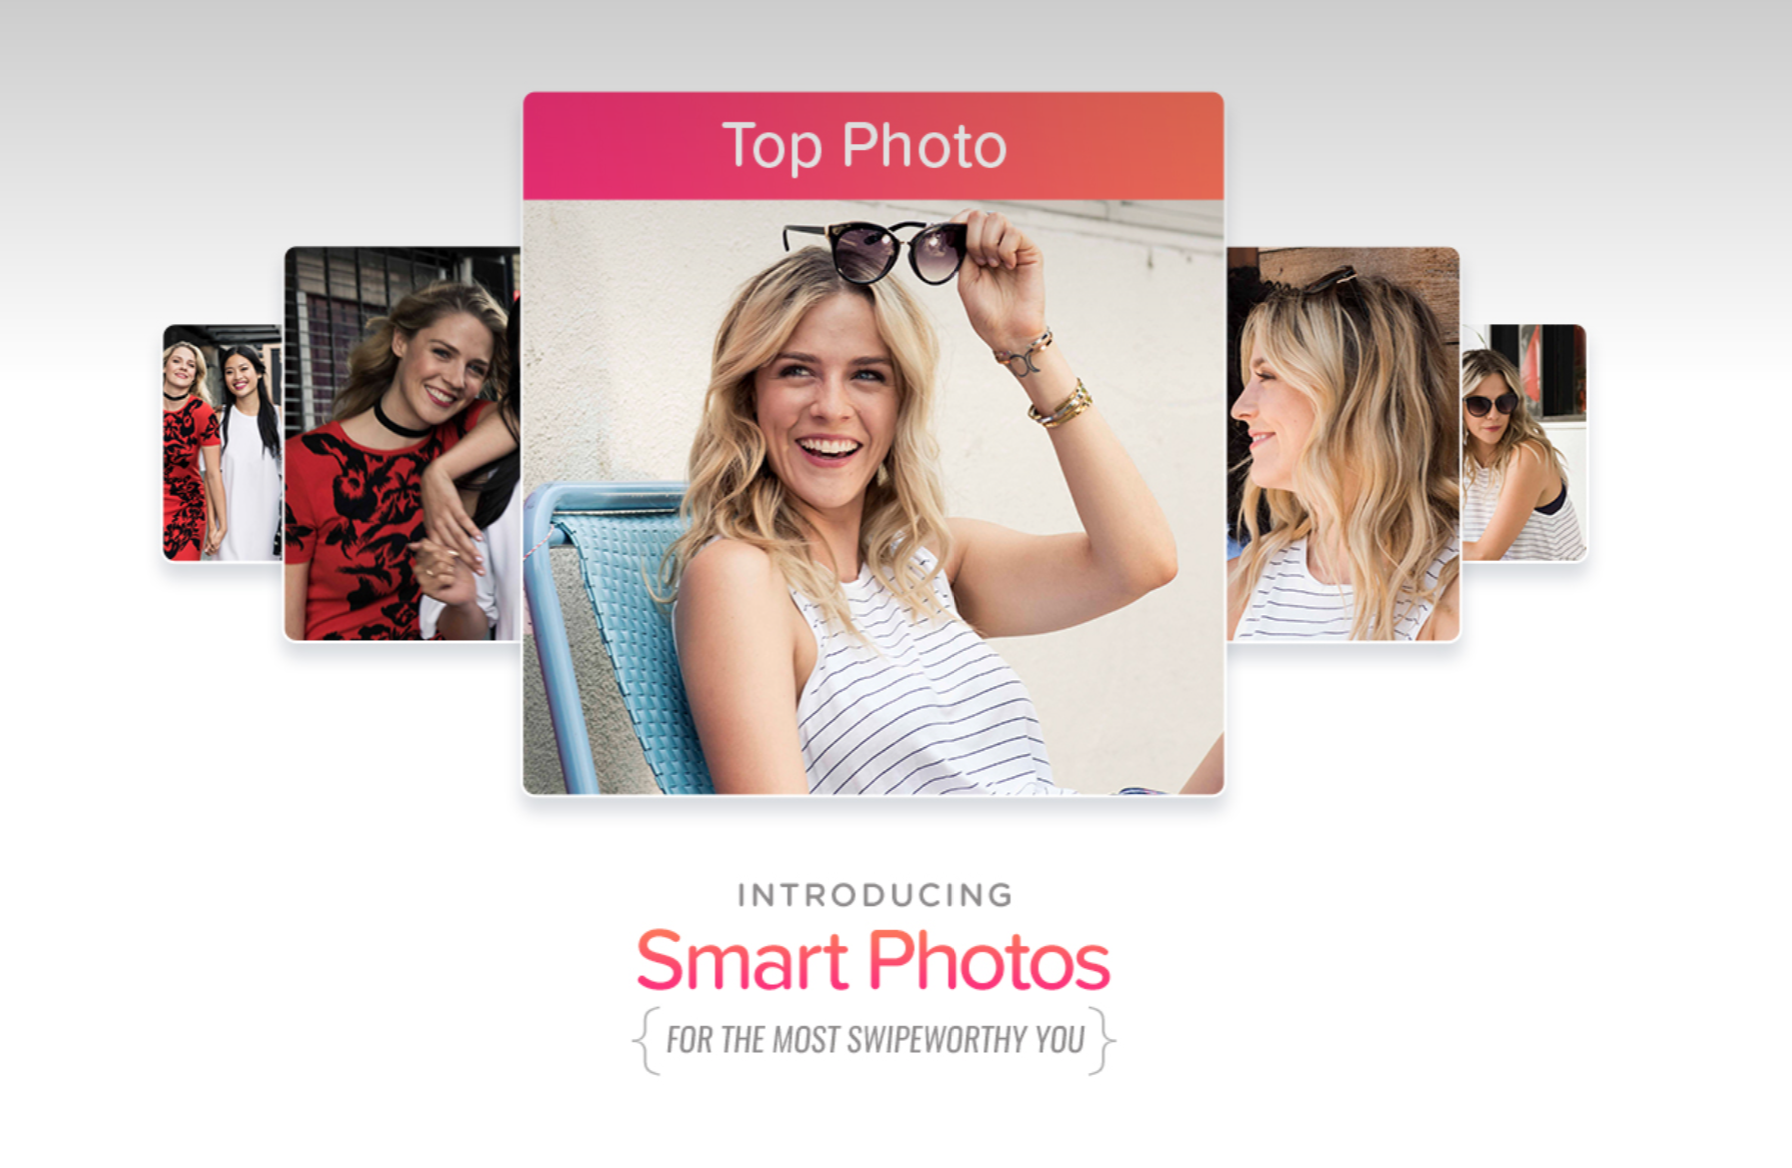 Tinders New Smart Photos Algorithm Will Find Your Best